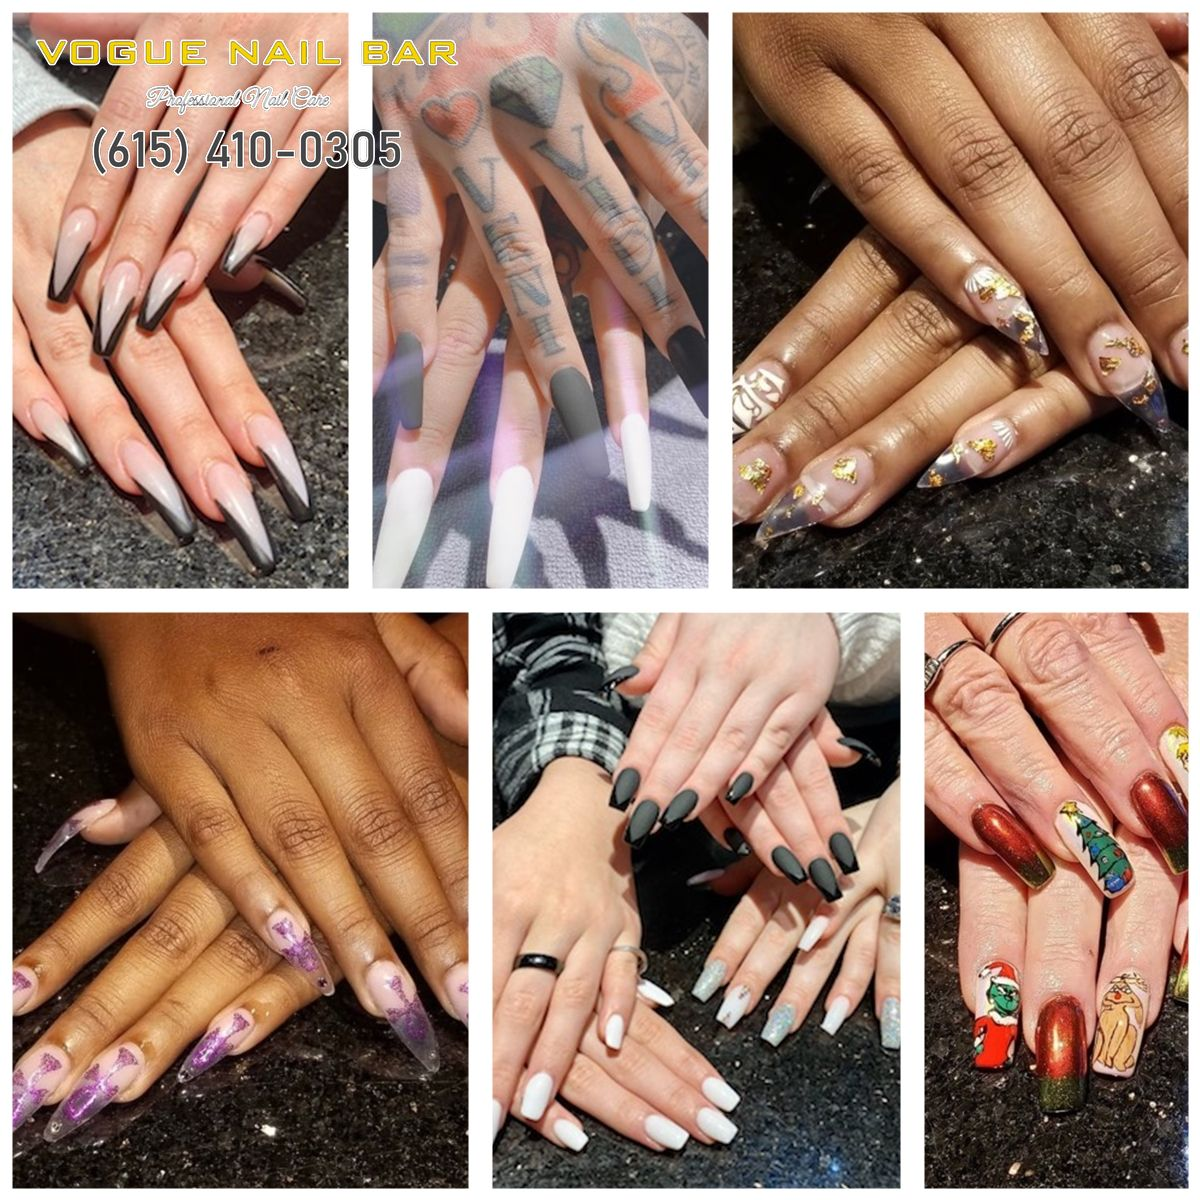 Vogue Nail Bar - Nail salon Murfreesboro, TN 37129